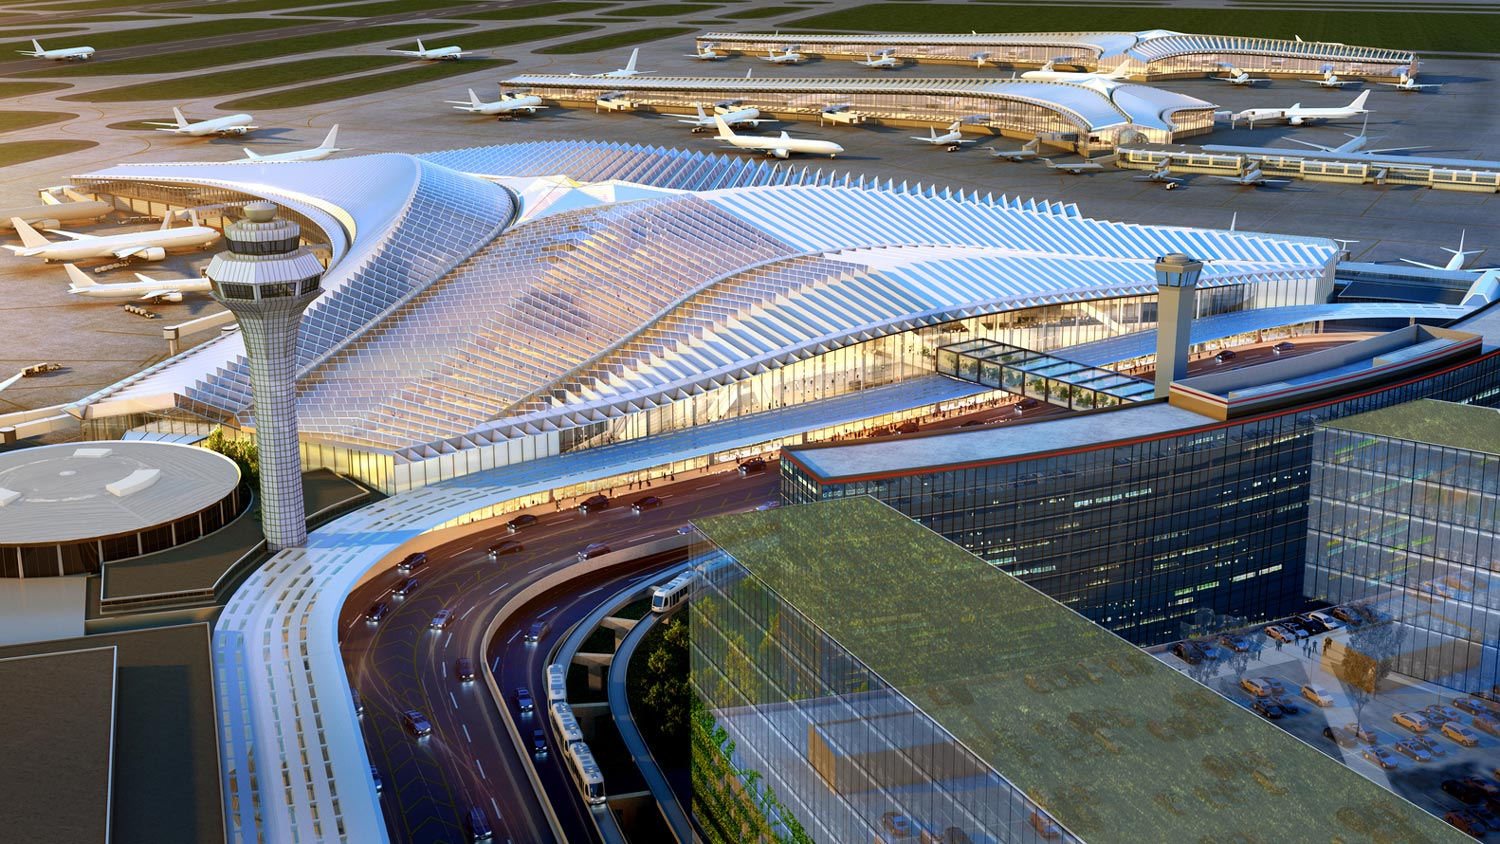 New_O'Hare_Global_Terminal-Visual Atelier 8-7.jpg